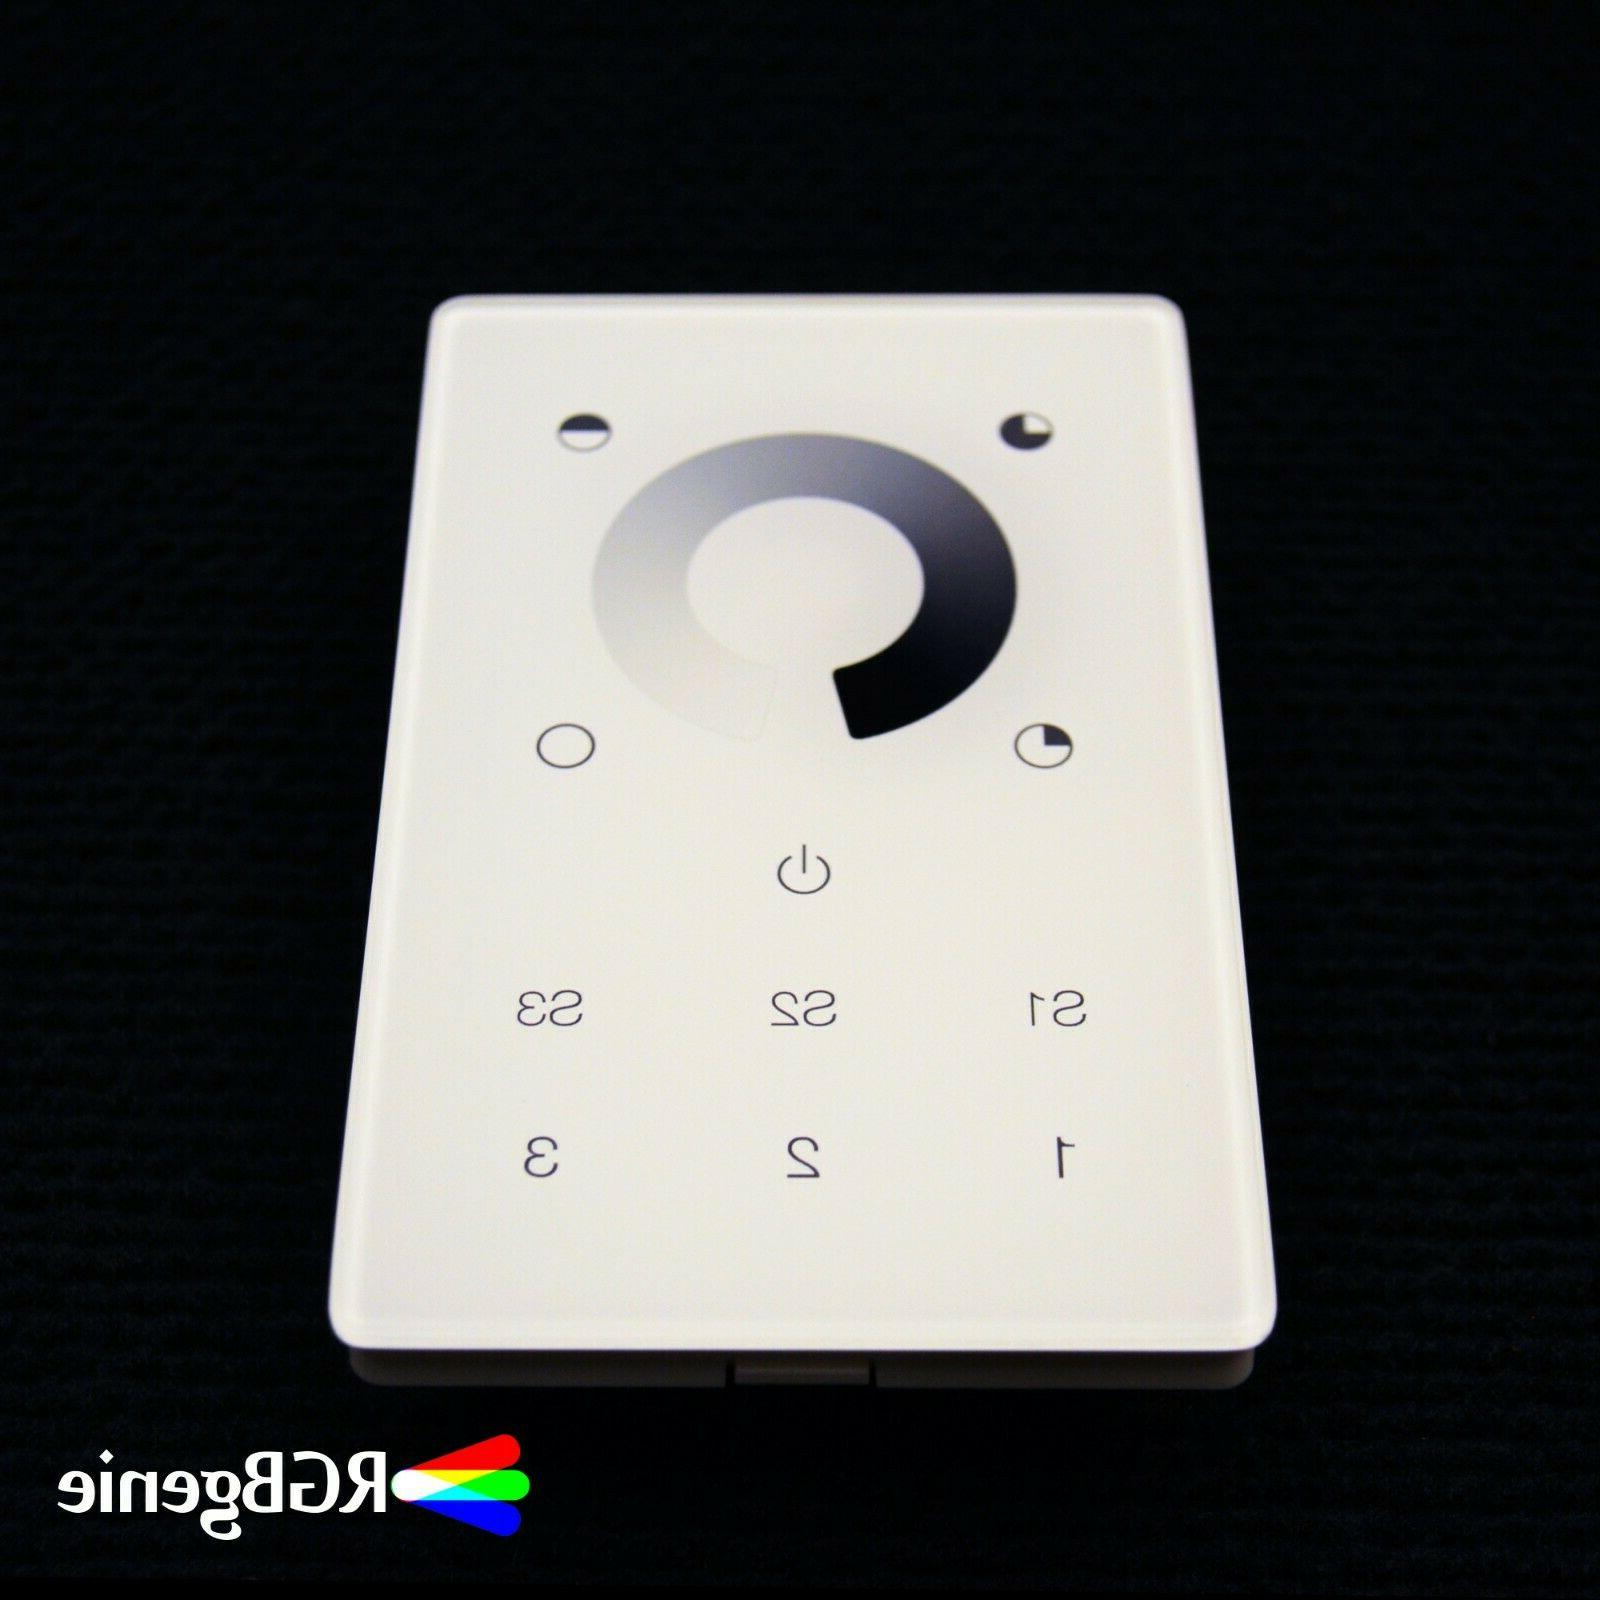 ZigBee Panel Single Color In-Wall Remote and